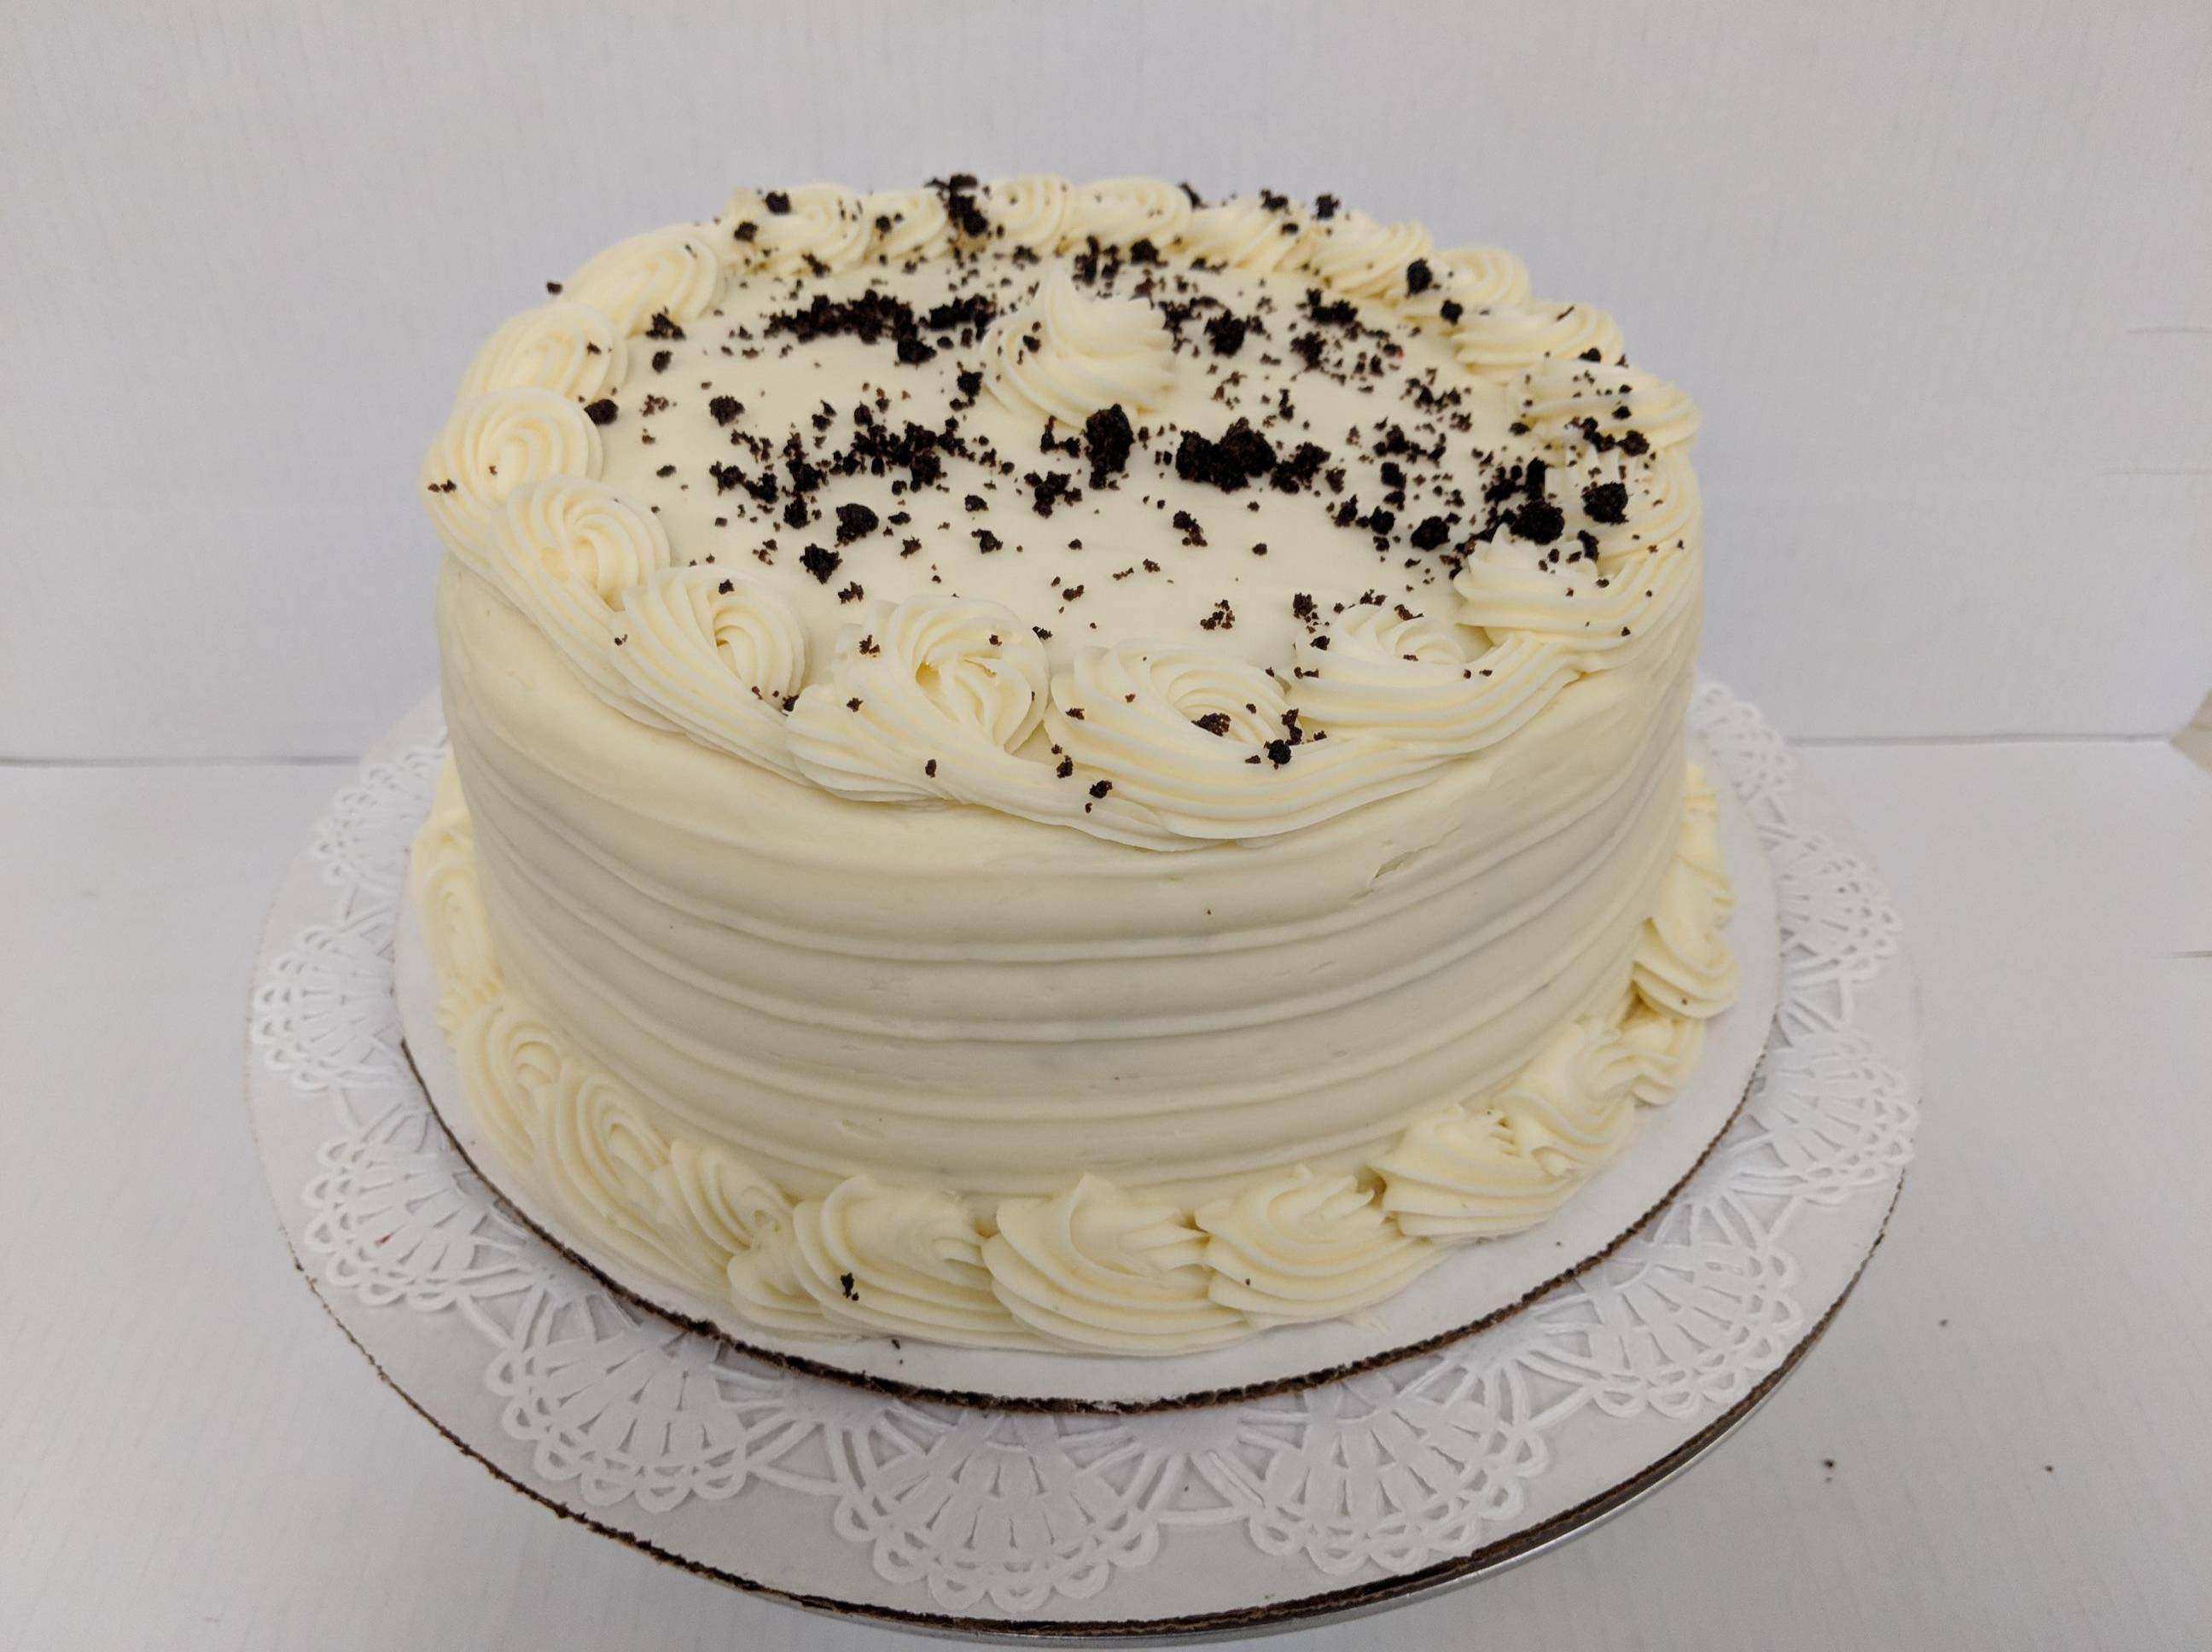 Choc Cake Cream Cheese Frosting